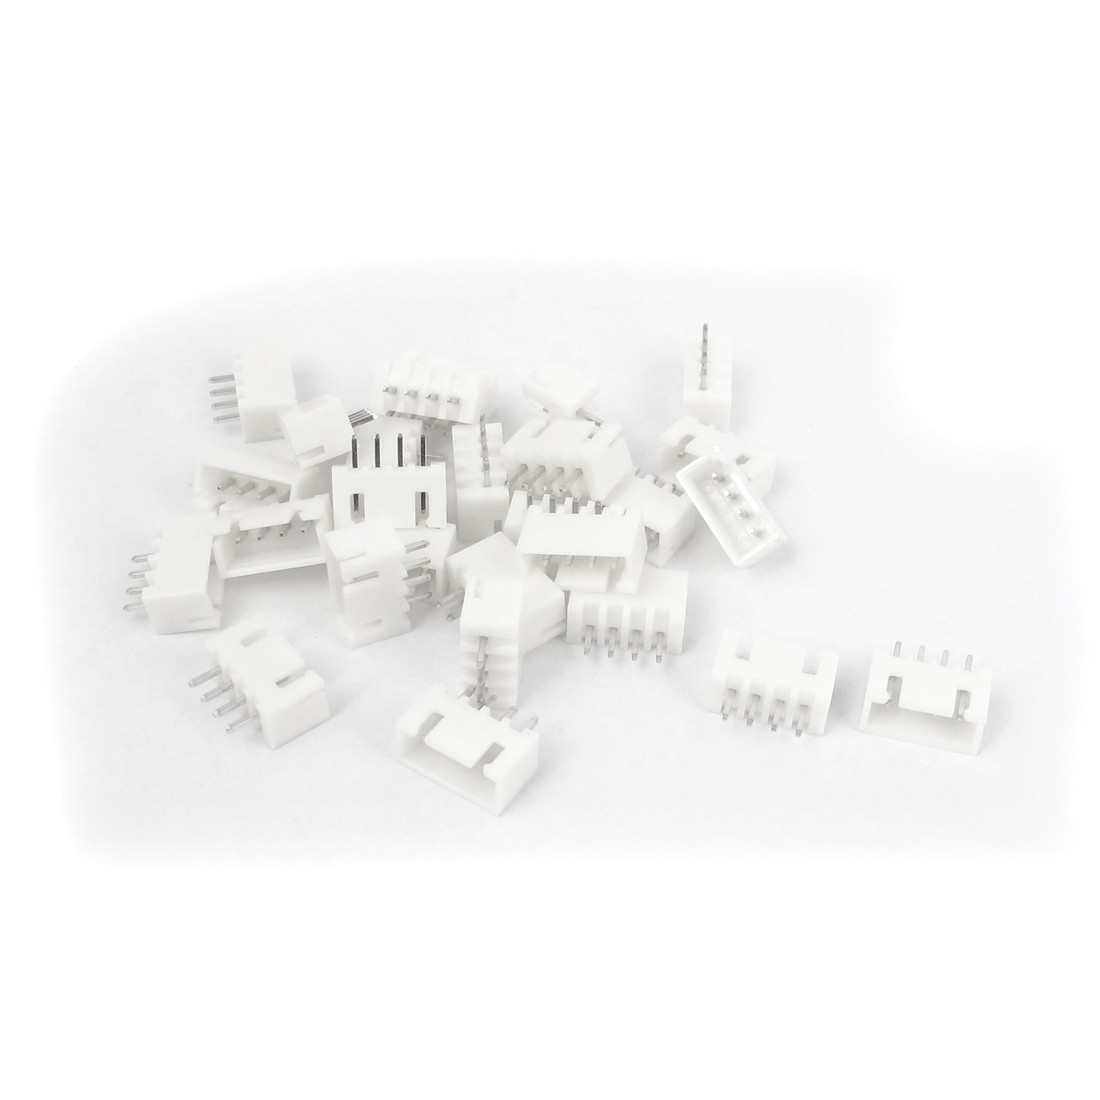 27pcs Single Row 4 Terminal 2.54mm Pitch Straight DIP Female Pin Header Socket Connector White